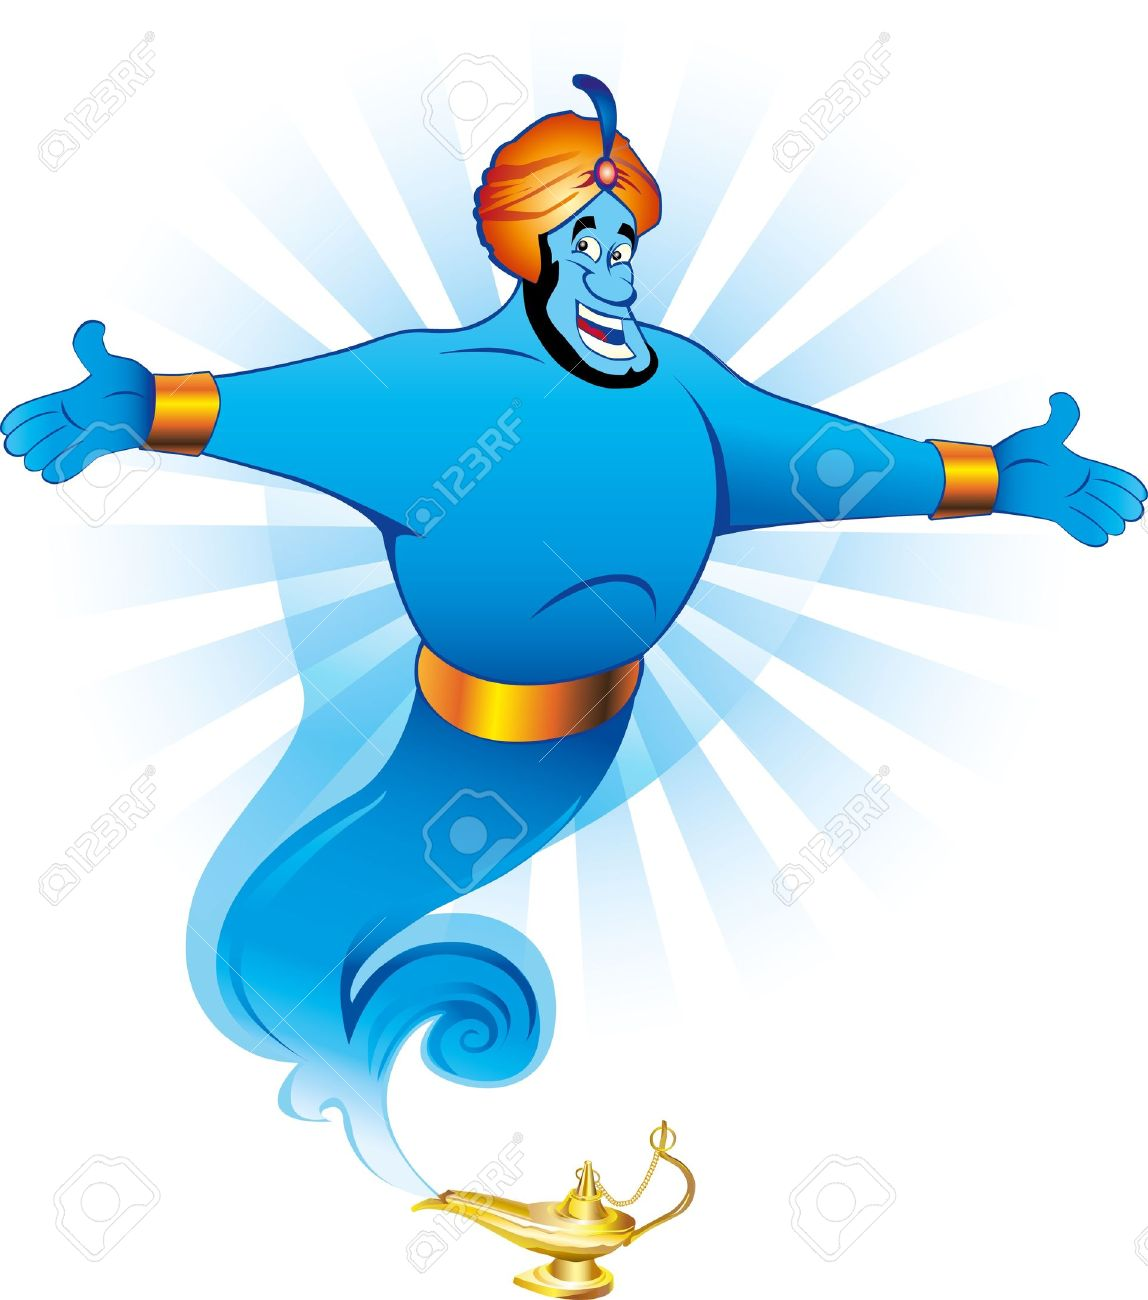 Illustration of Magic Genie Appear from Magic Lamp. Stock Vector - 18990083